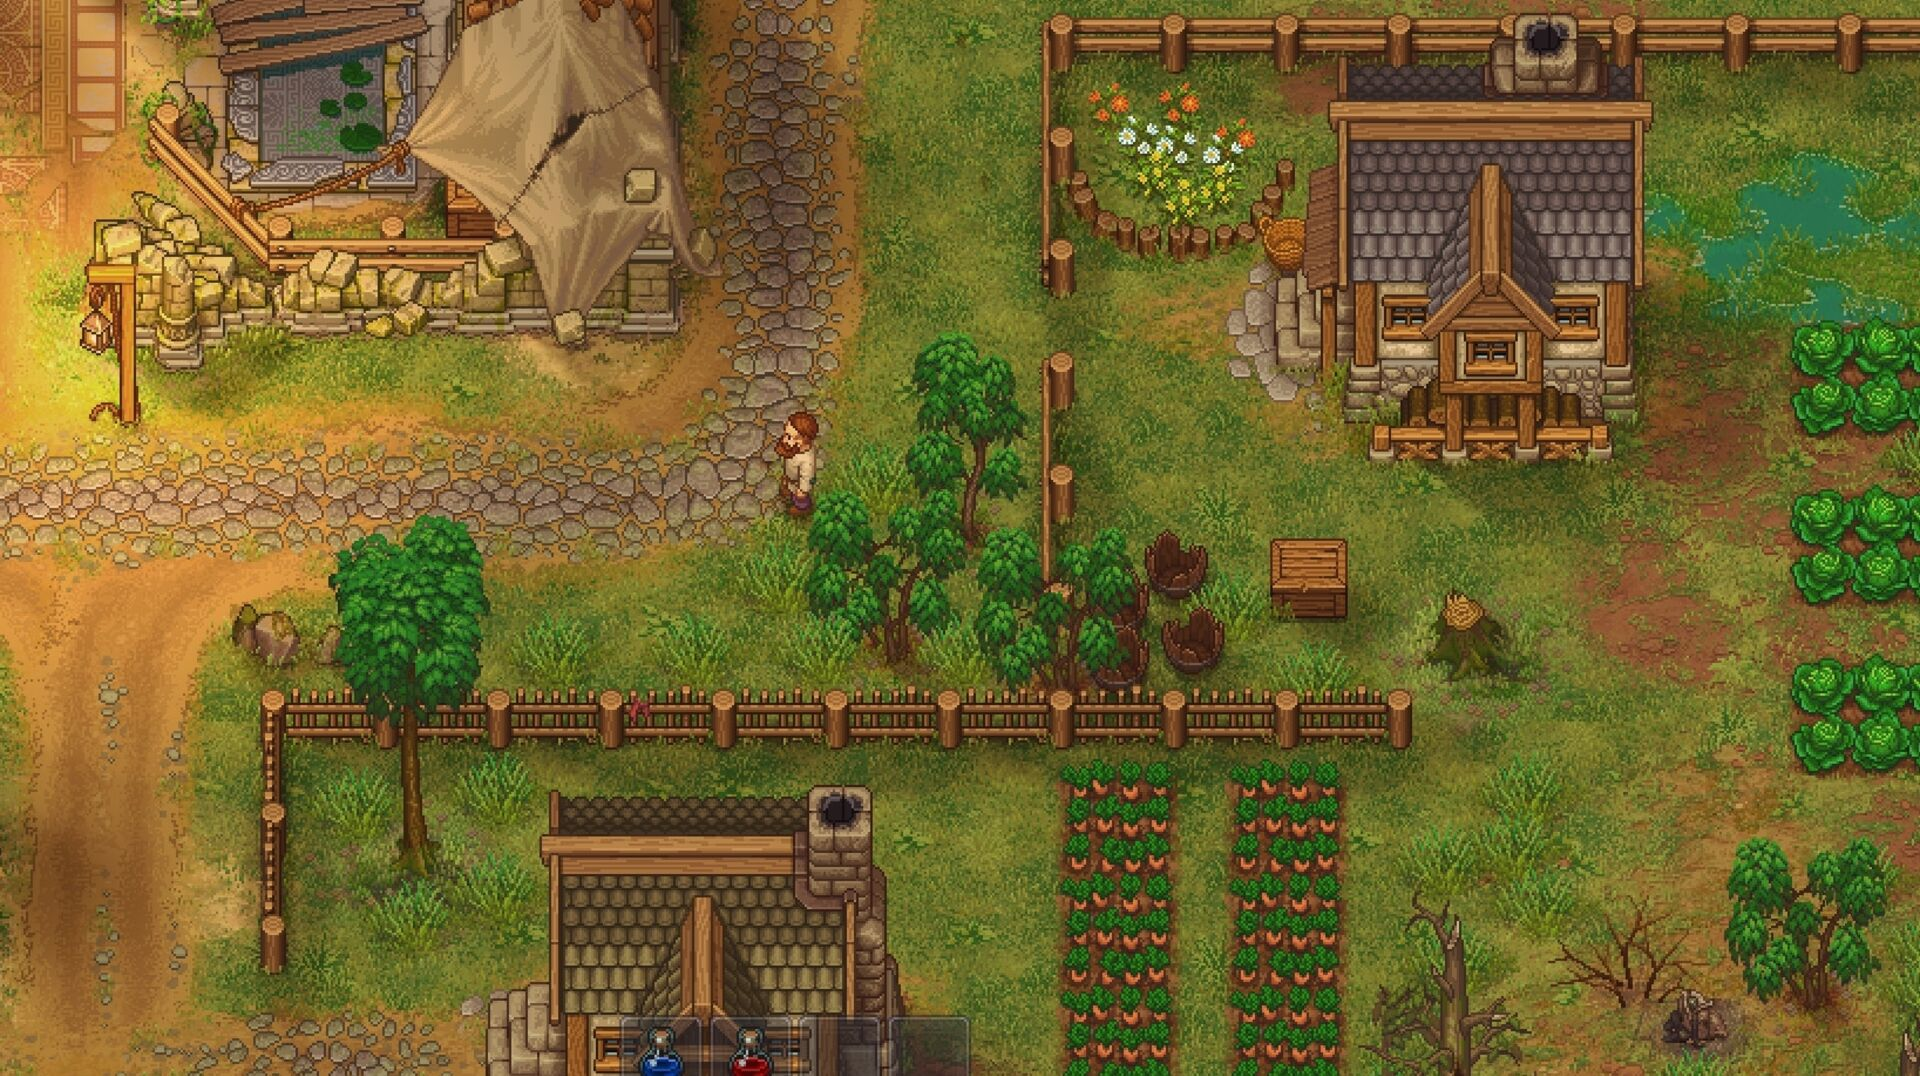 Graveyard Keeper looks like Stardew Valley, but with